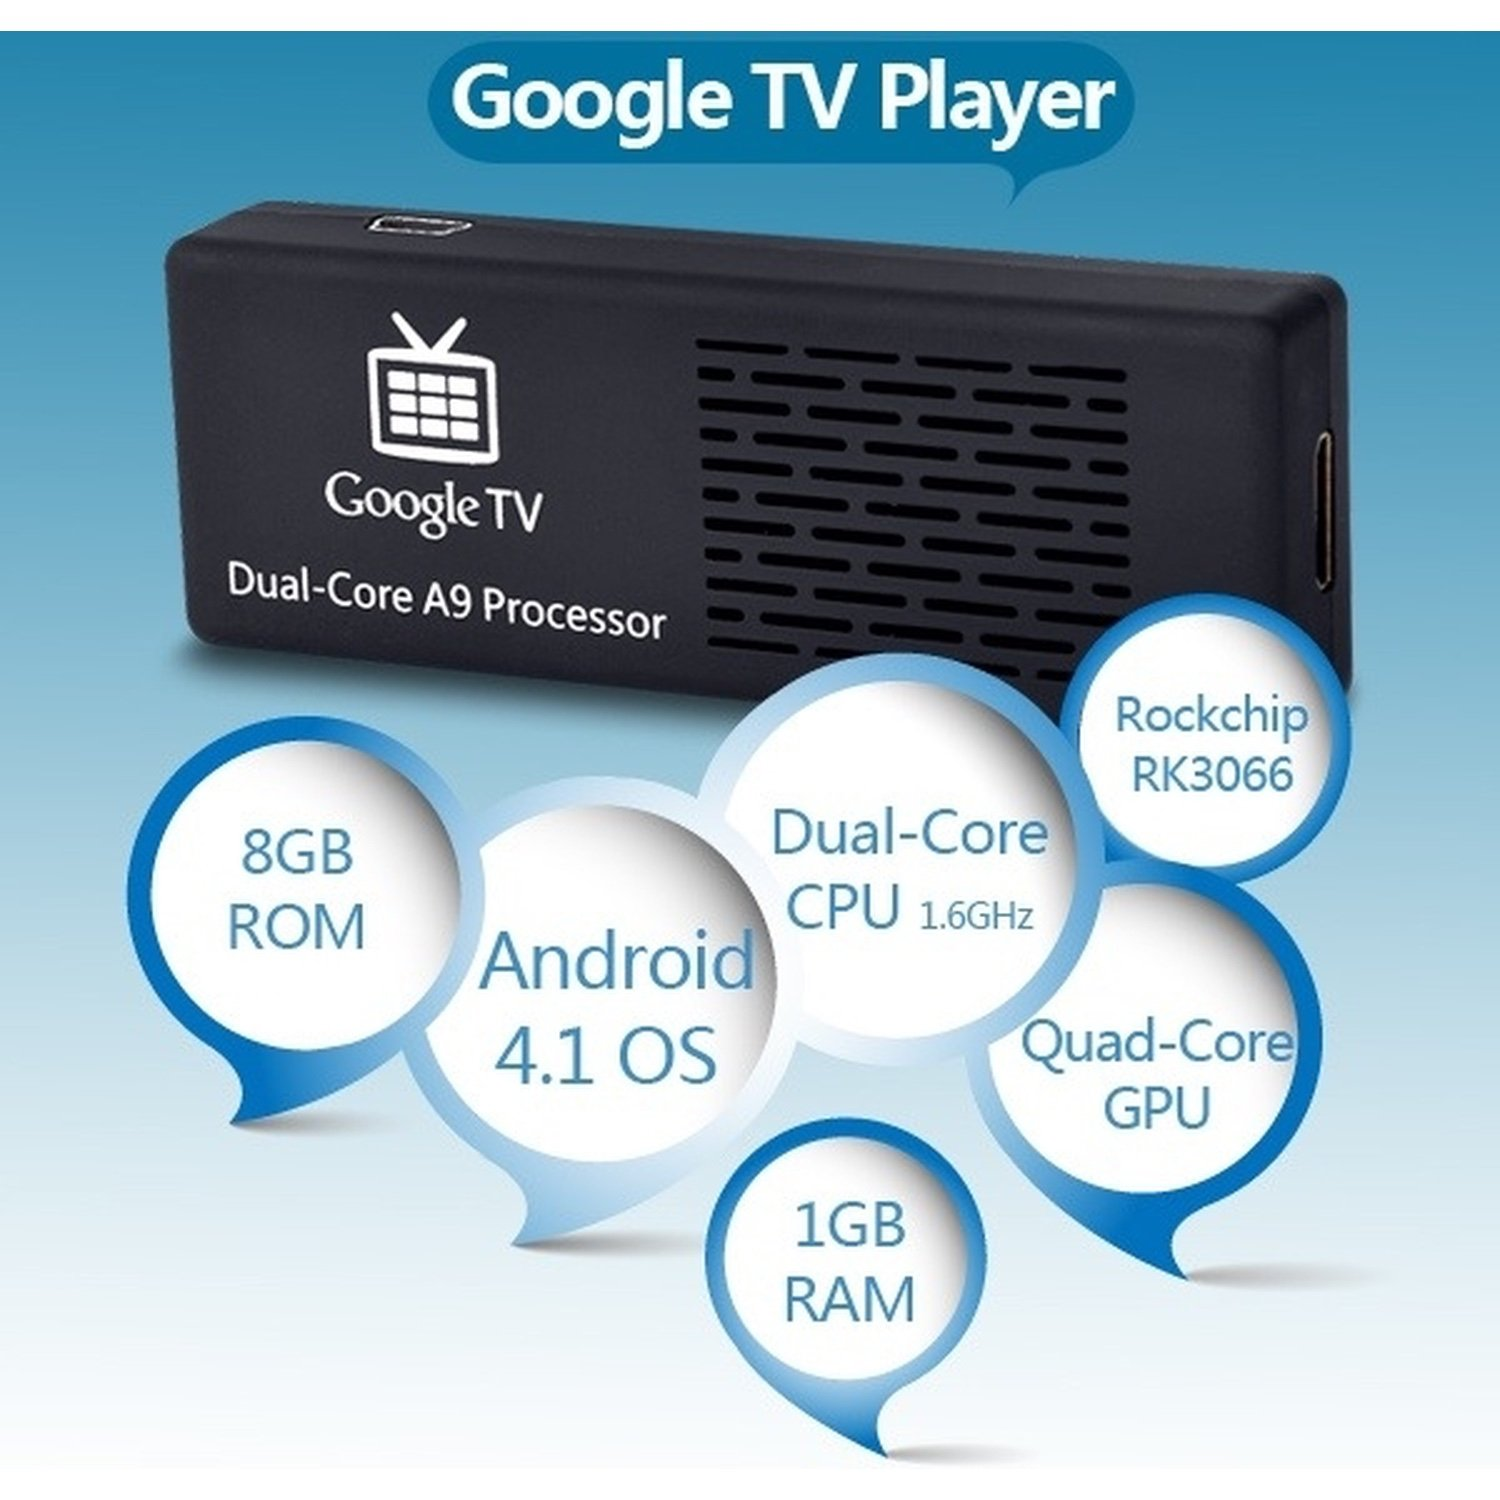 Mini PC MK808 Dual-Core Android 4.1.1 Googling TV Player w/1 GB RAM/8 GB ROM /Wi-Fi/TF/HDMI